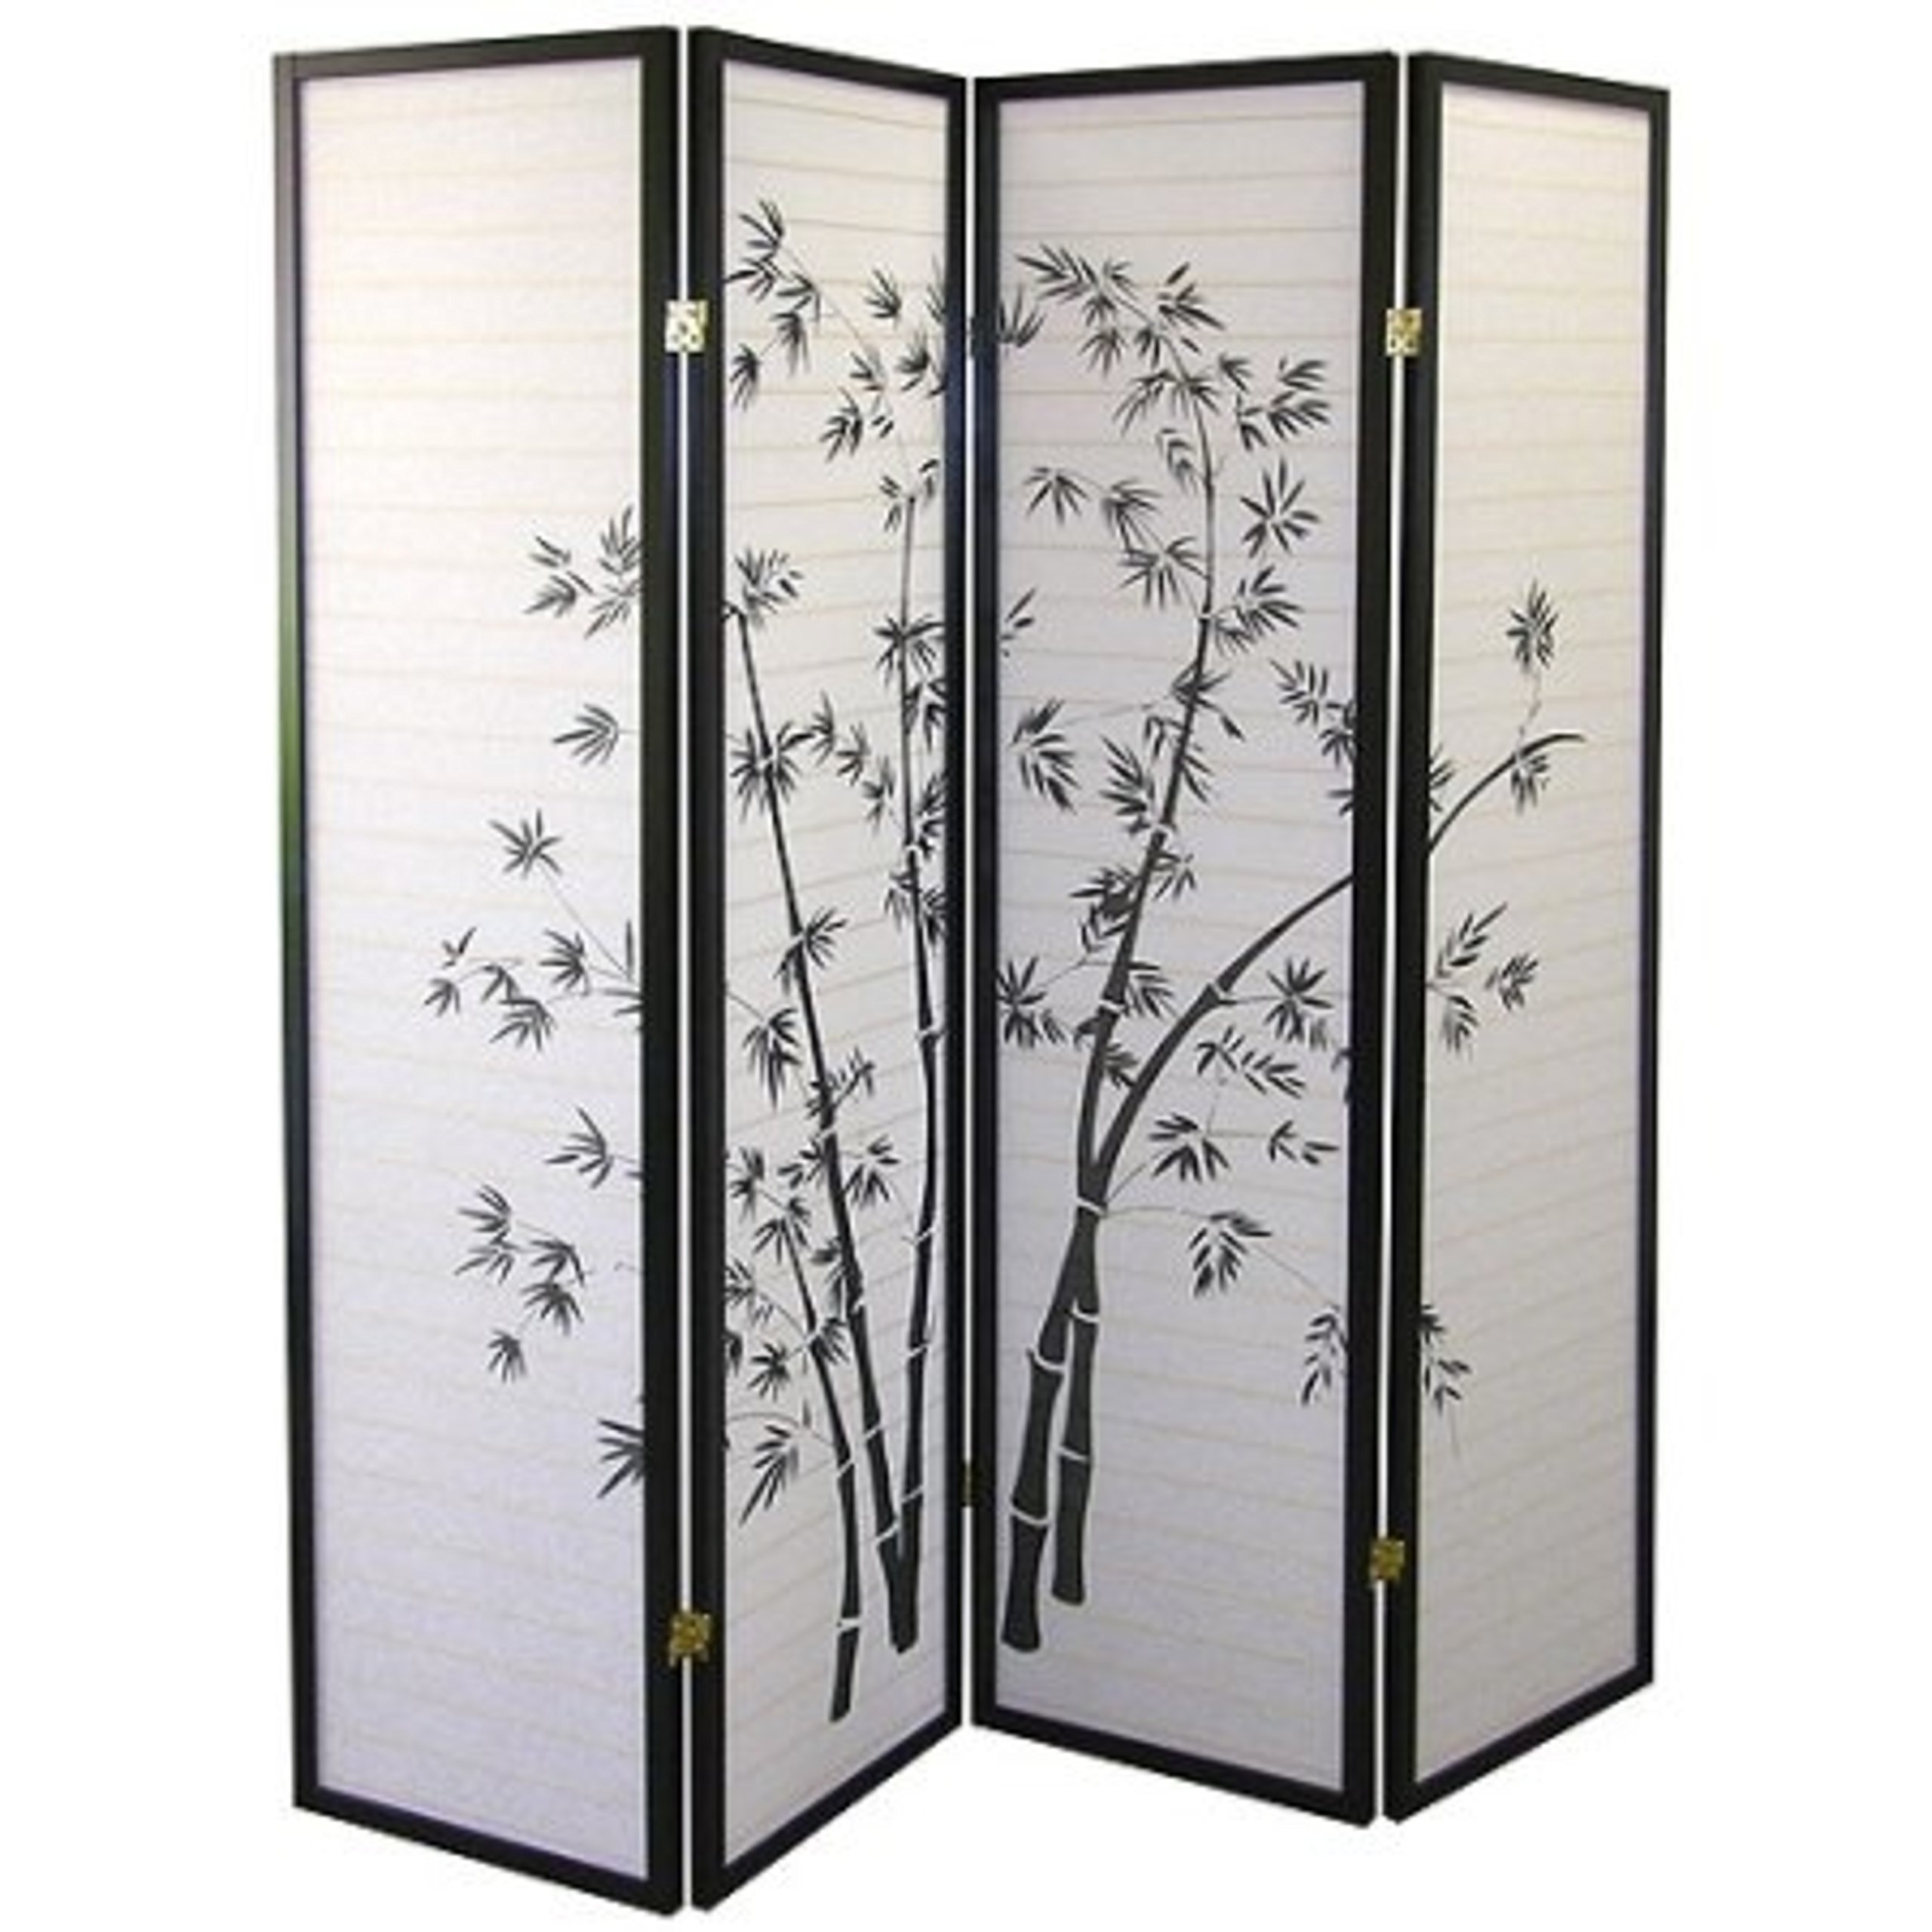 Lovely Bamboo Silhouettes Wood Frame with Black Finish 4 Panels Divider